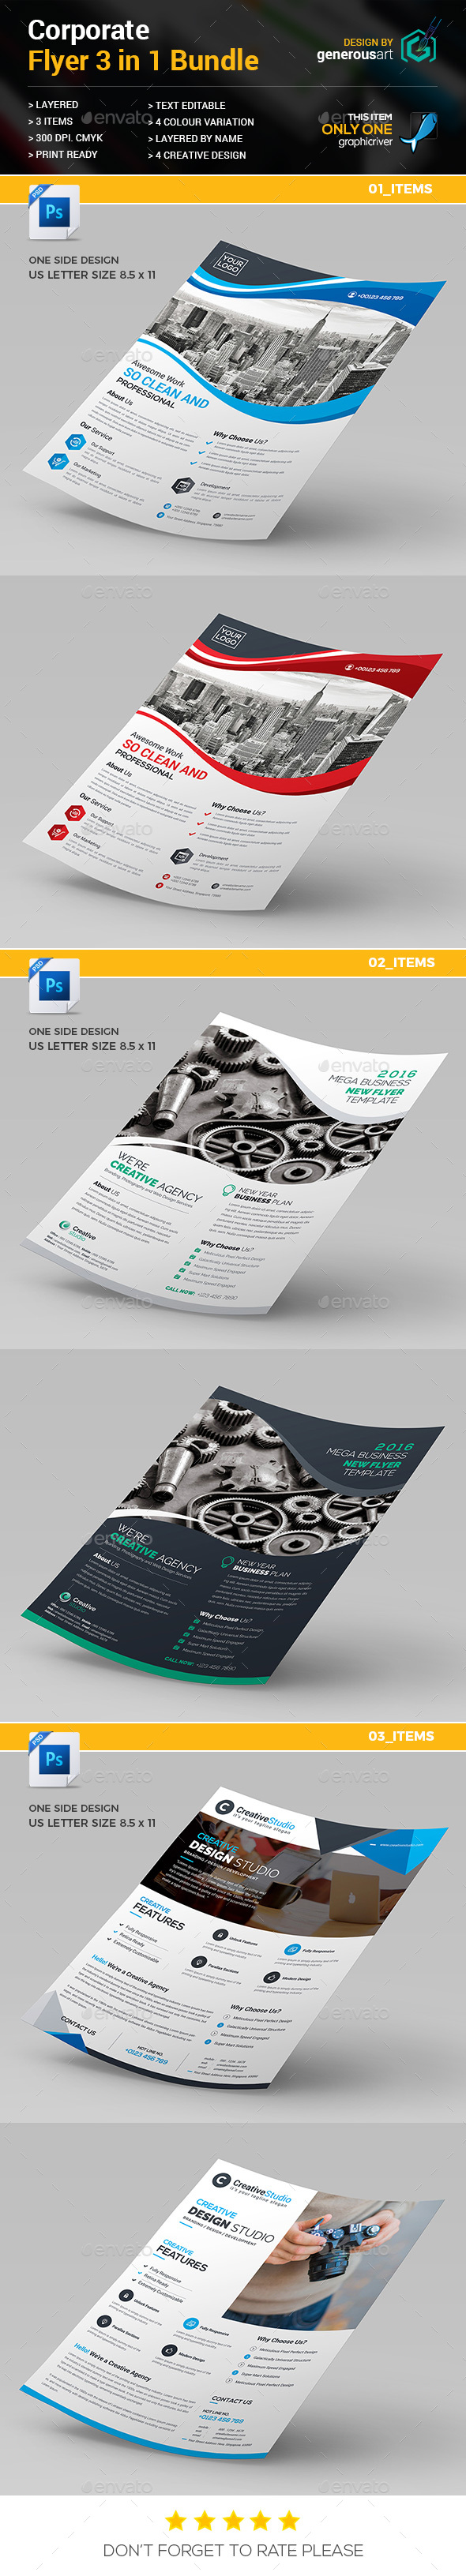 Flyer Bundle 3 in 1 - Corporate Flyers